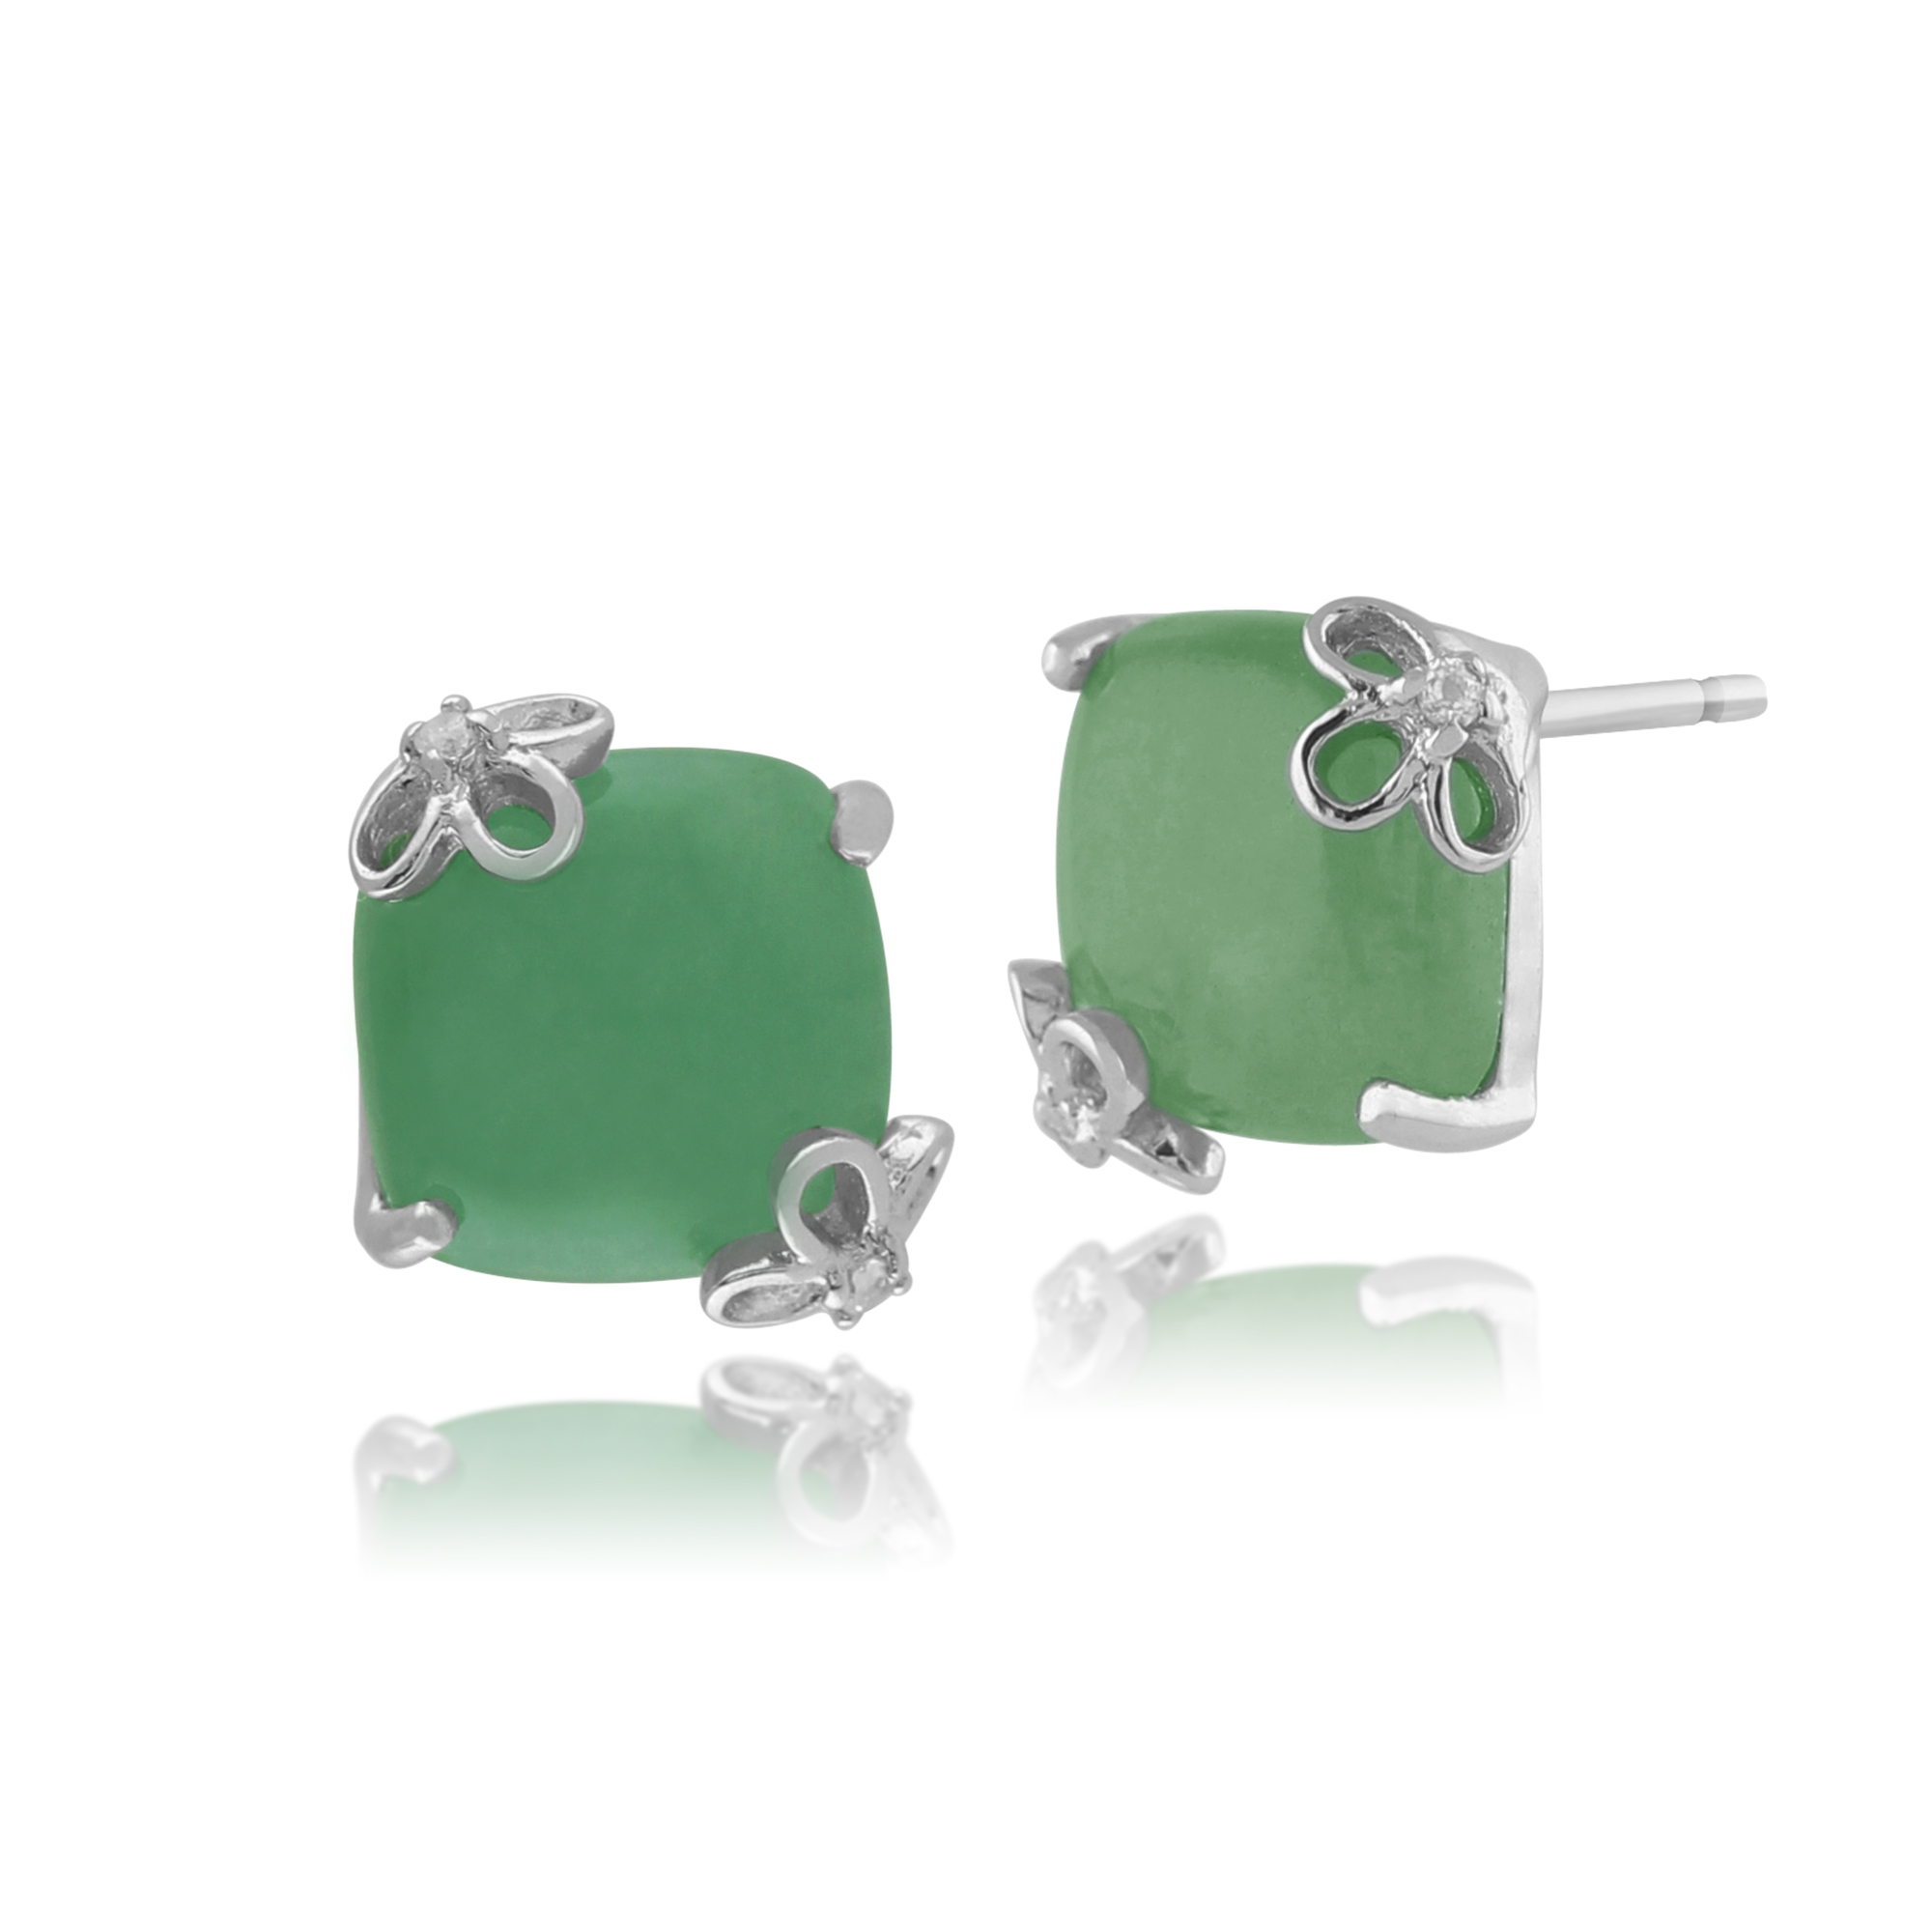 Gemondo 925 Sterling Silver 5ct Green Jade & White Topaz Square Stud Earrings